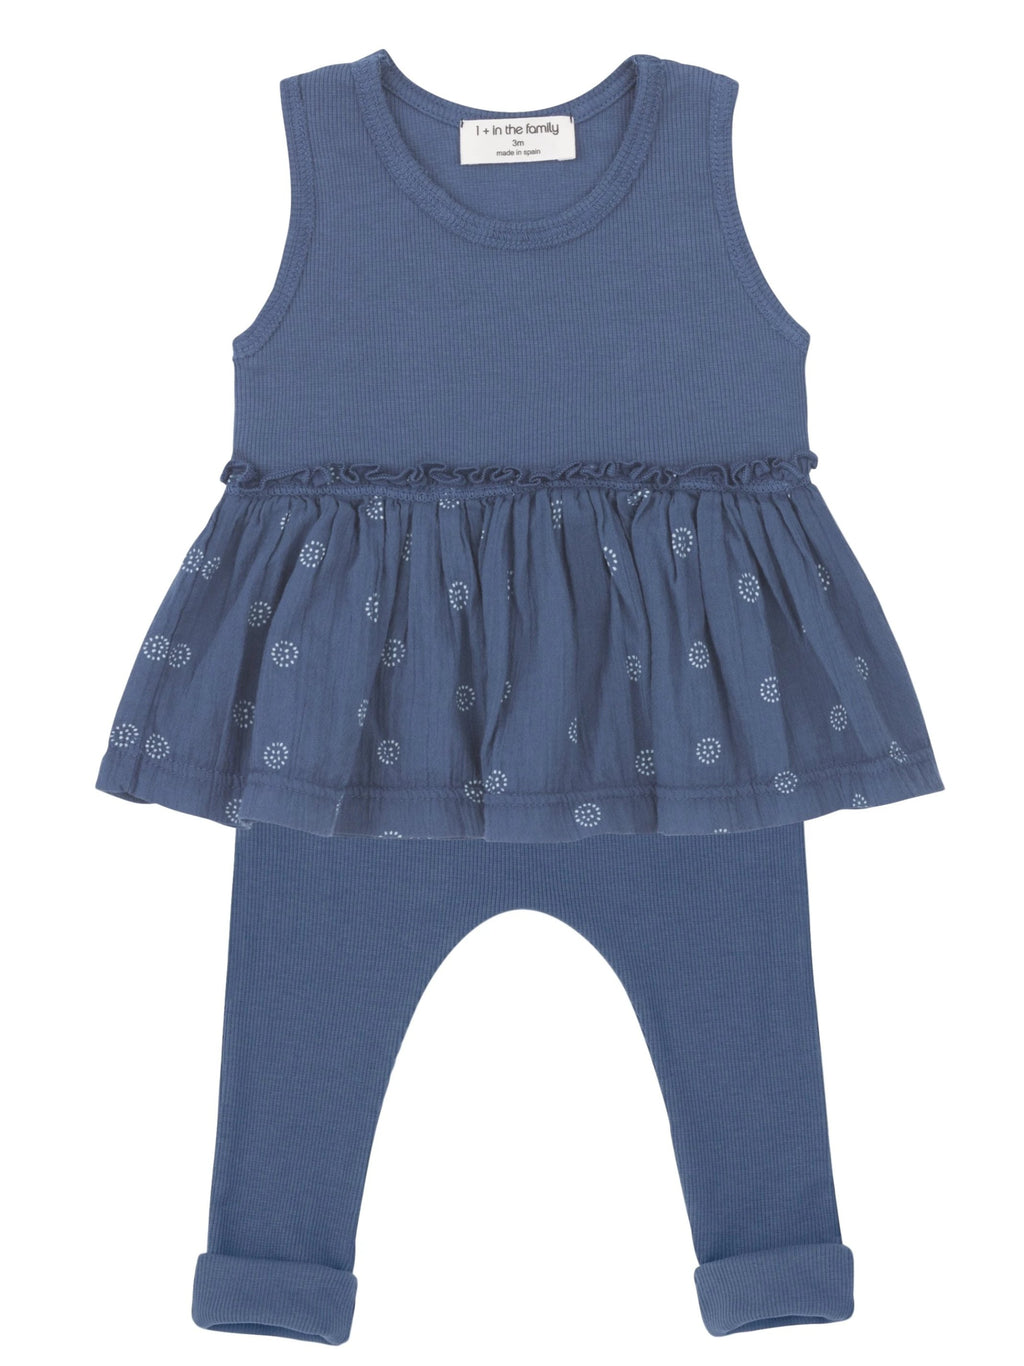 One + In the Family Baby Girl Barletta & Marti Outfit Set